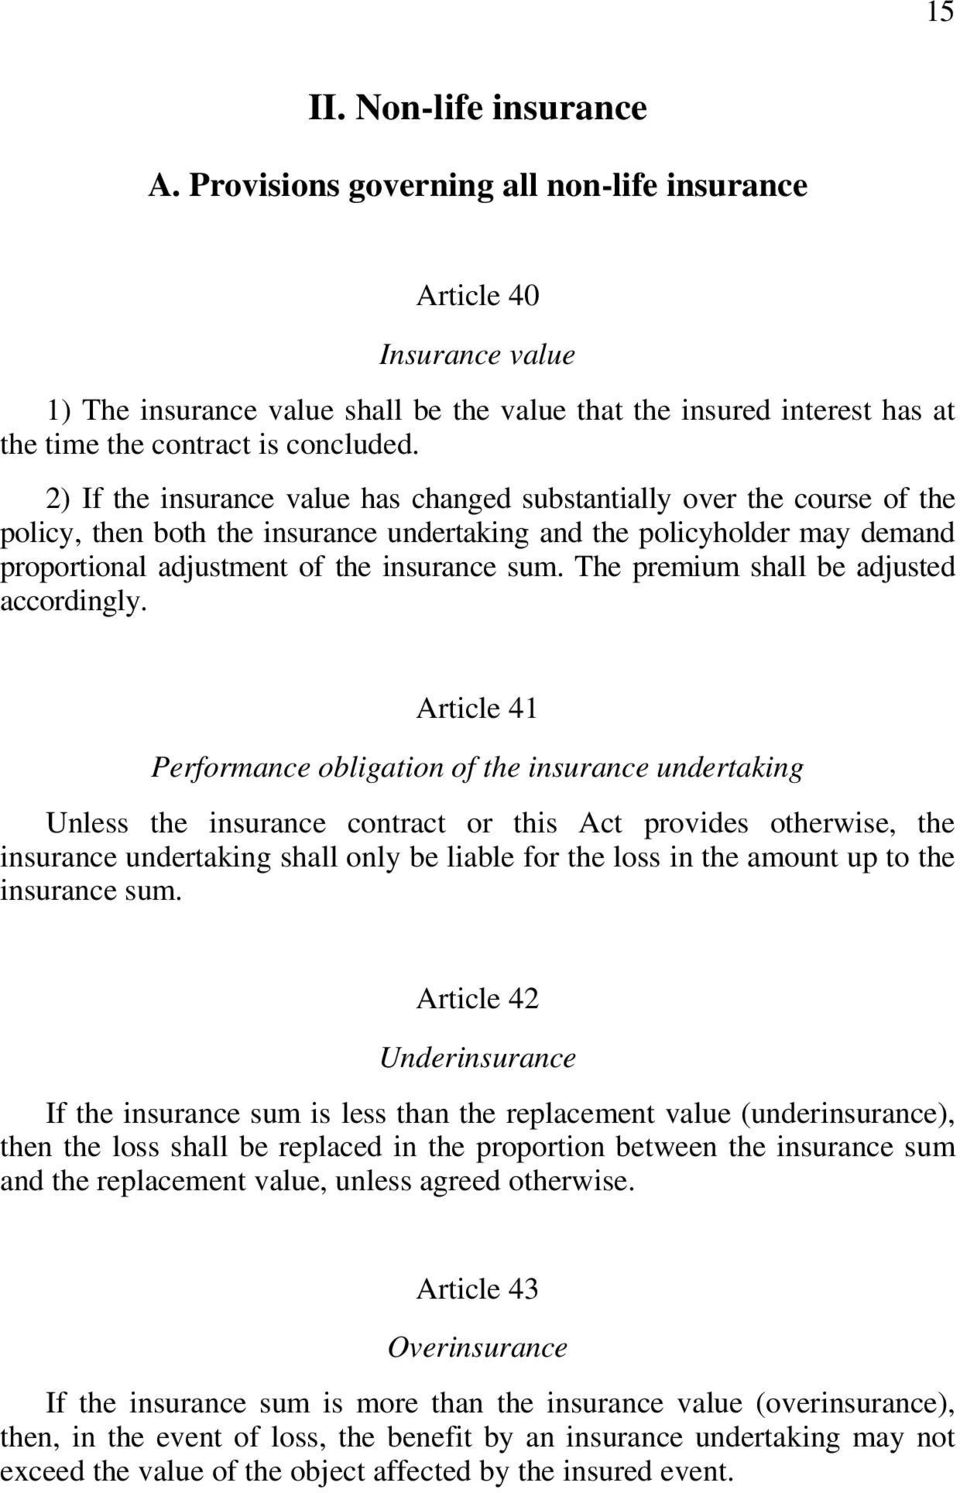 2) If the insurance value has changed substantially over the course of the policy, then both the insurance undertaking and the policyholder may demand proportional adjustment of the insurance sum.